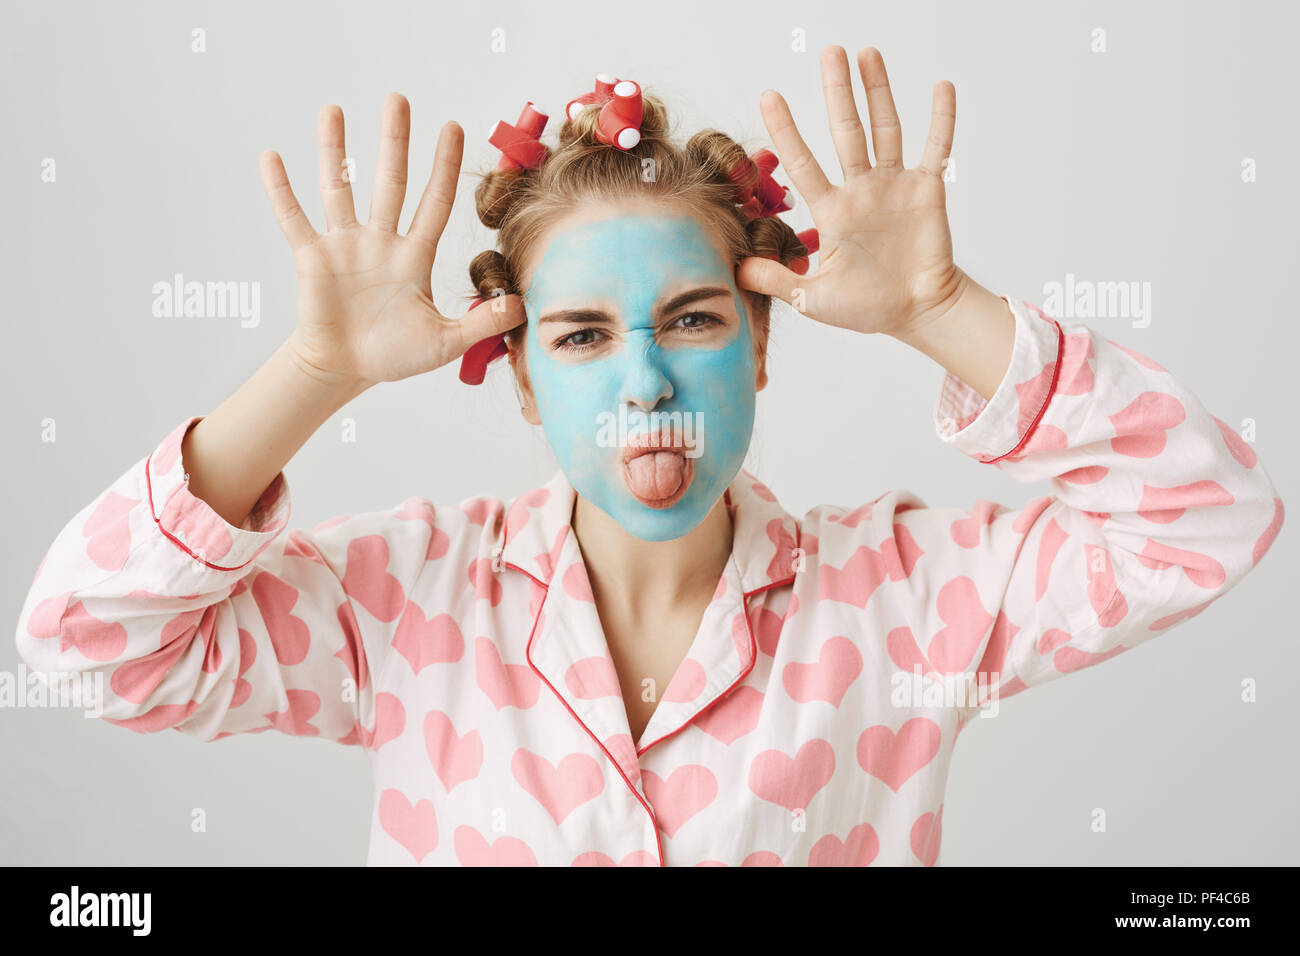 Playful and childish cute girl in facial mask and hair-curlers, wearing nightwear with heart print, making faces and sticking out tongue, being nasty while quarreling with sister over gray background - Stock Image